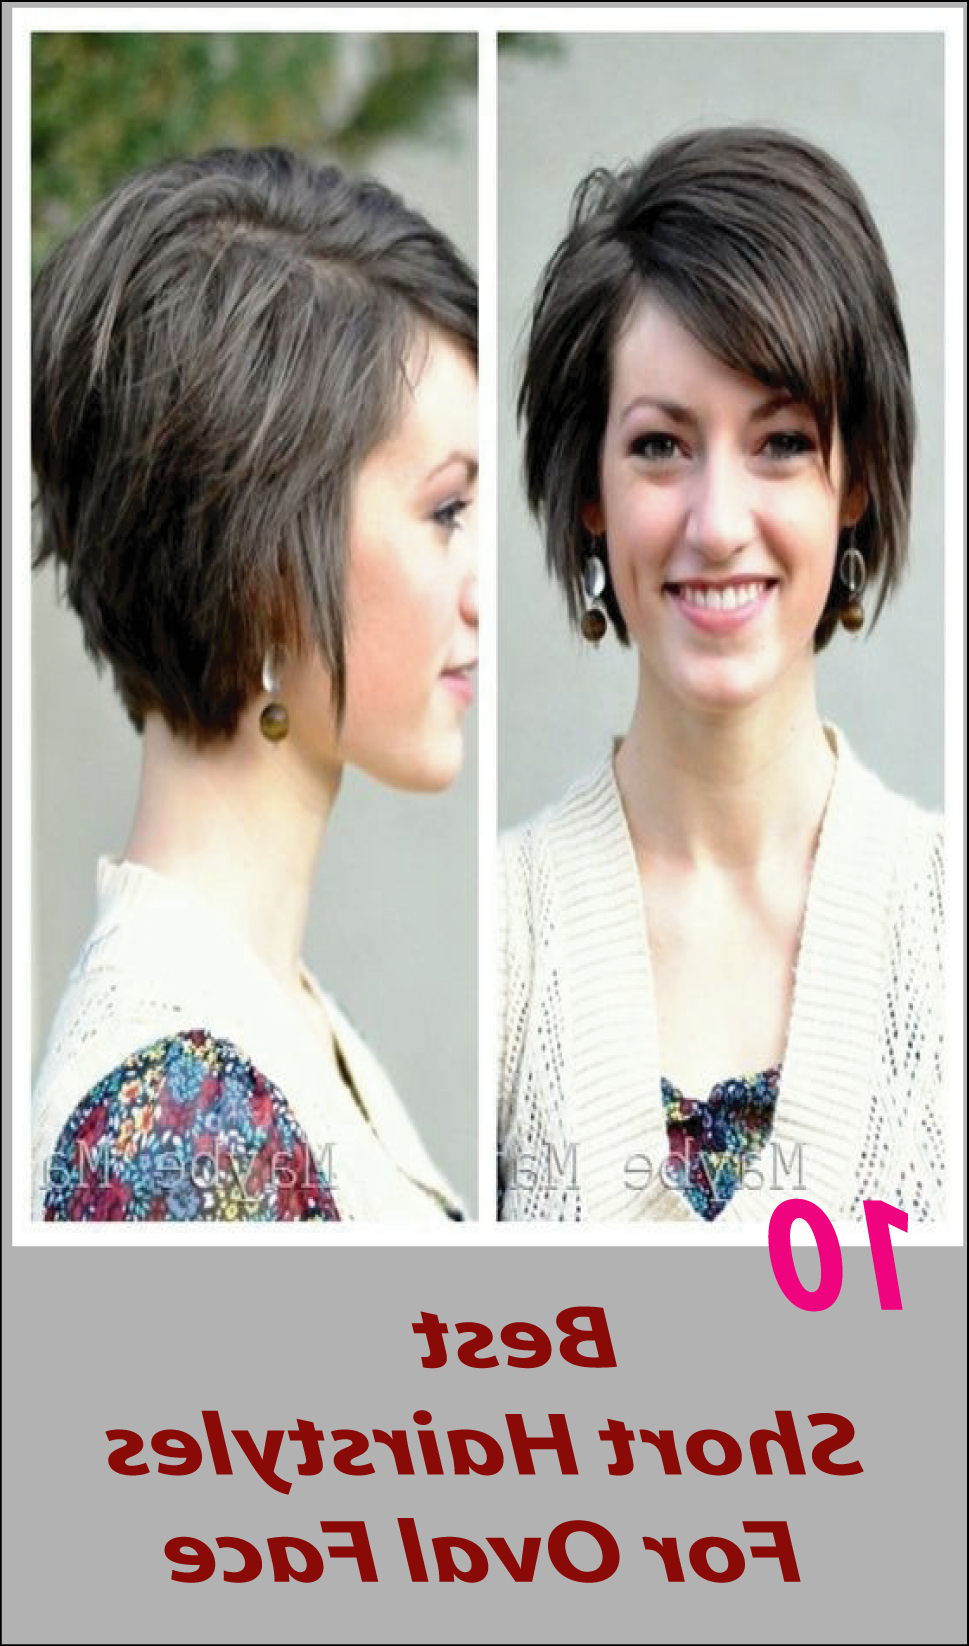 10 Best Short Hairstyles For Oval Face | Hair | Pinterest | Hair With Regard To Short Haircuts For Women With Oval Faces (View 1 of 25)